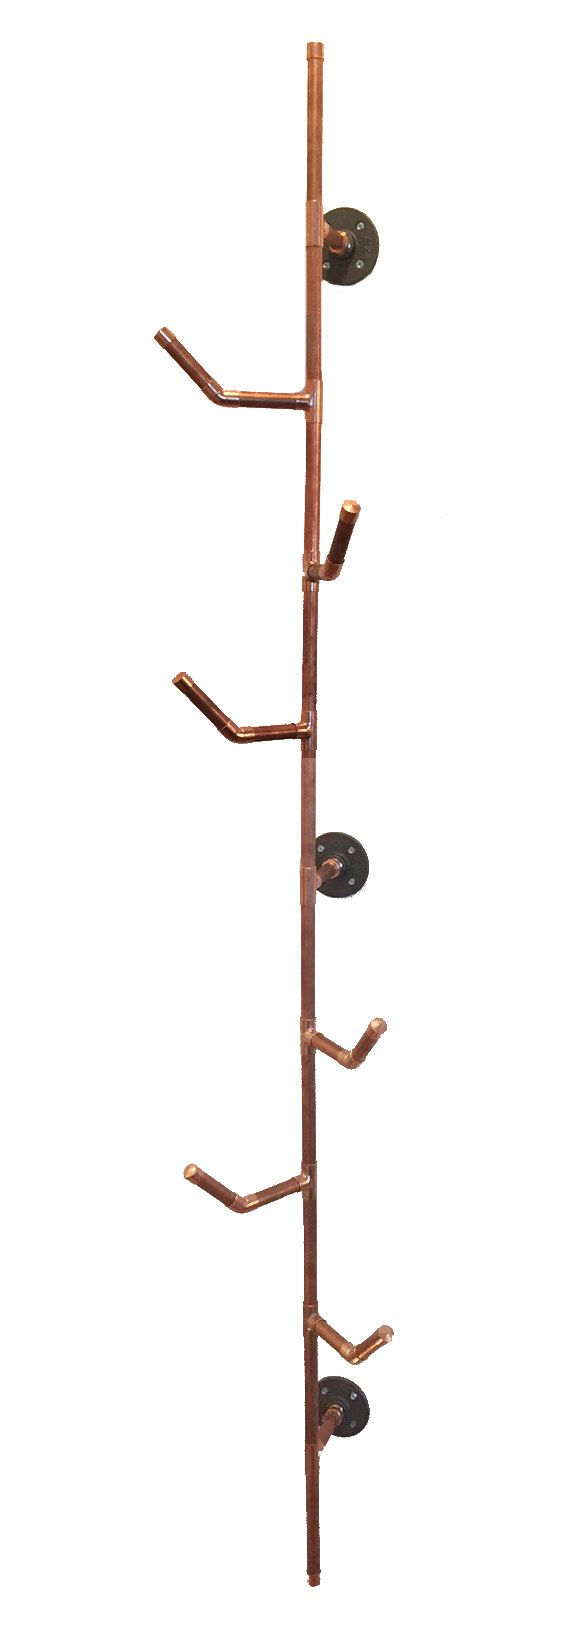 HANG IT Coat Rack- 6 series  Made of 100% Copper Pipe Size: 66H x 10 W 6 Hooks are arranged in a staggered pattern to provide maximum hanging